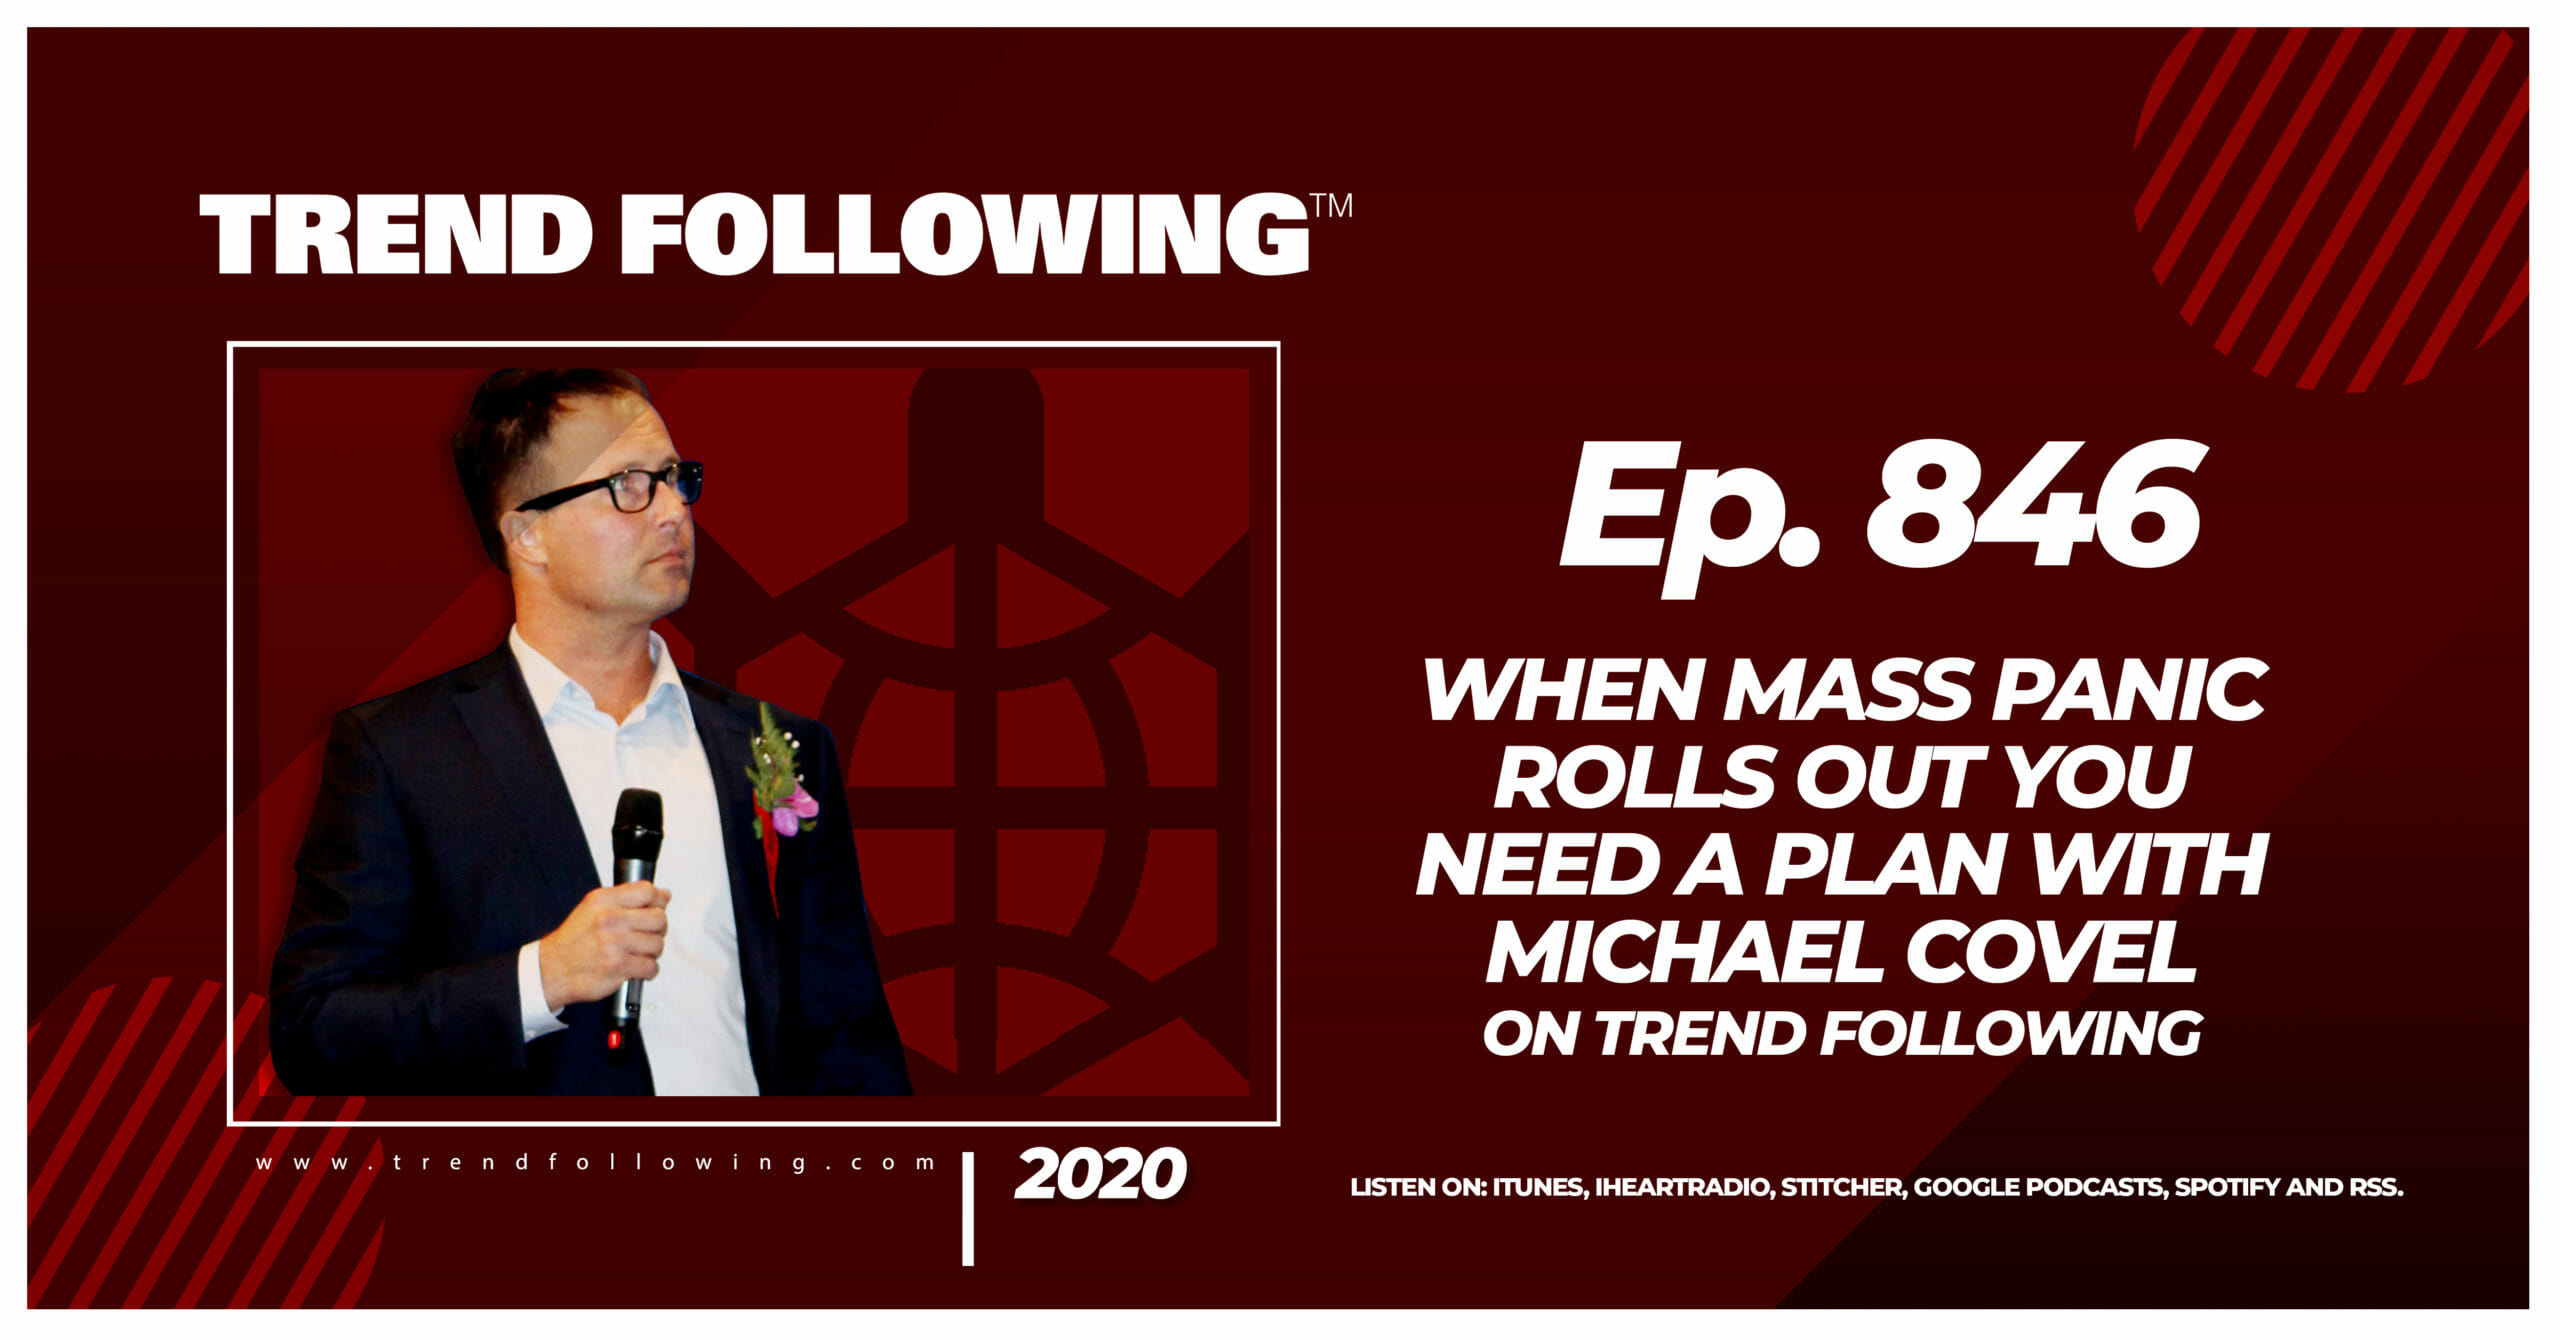 Episode 846 When Mass Panic Rolls Out You Need A Plan with Michael Covel